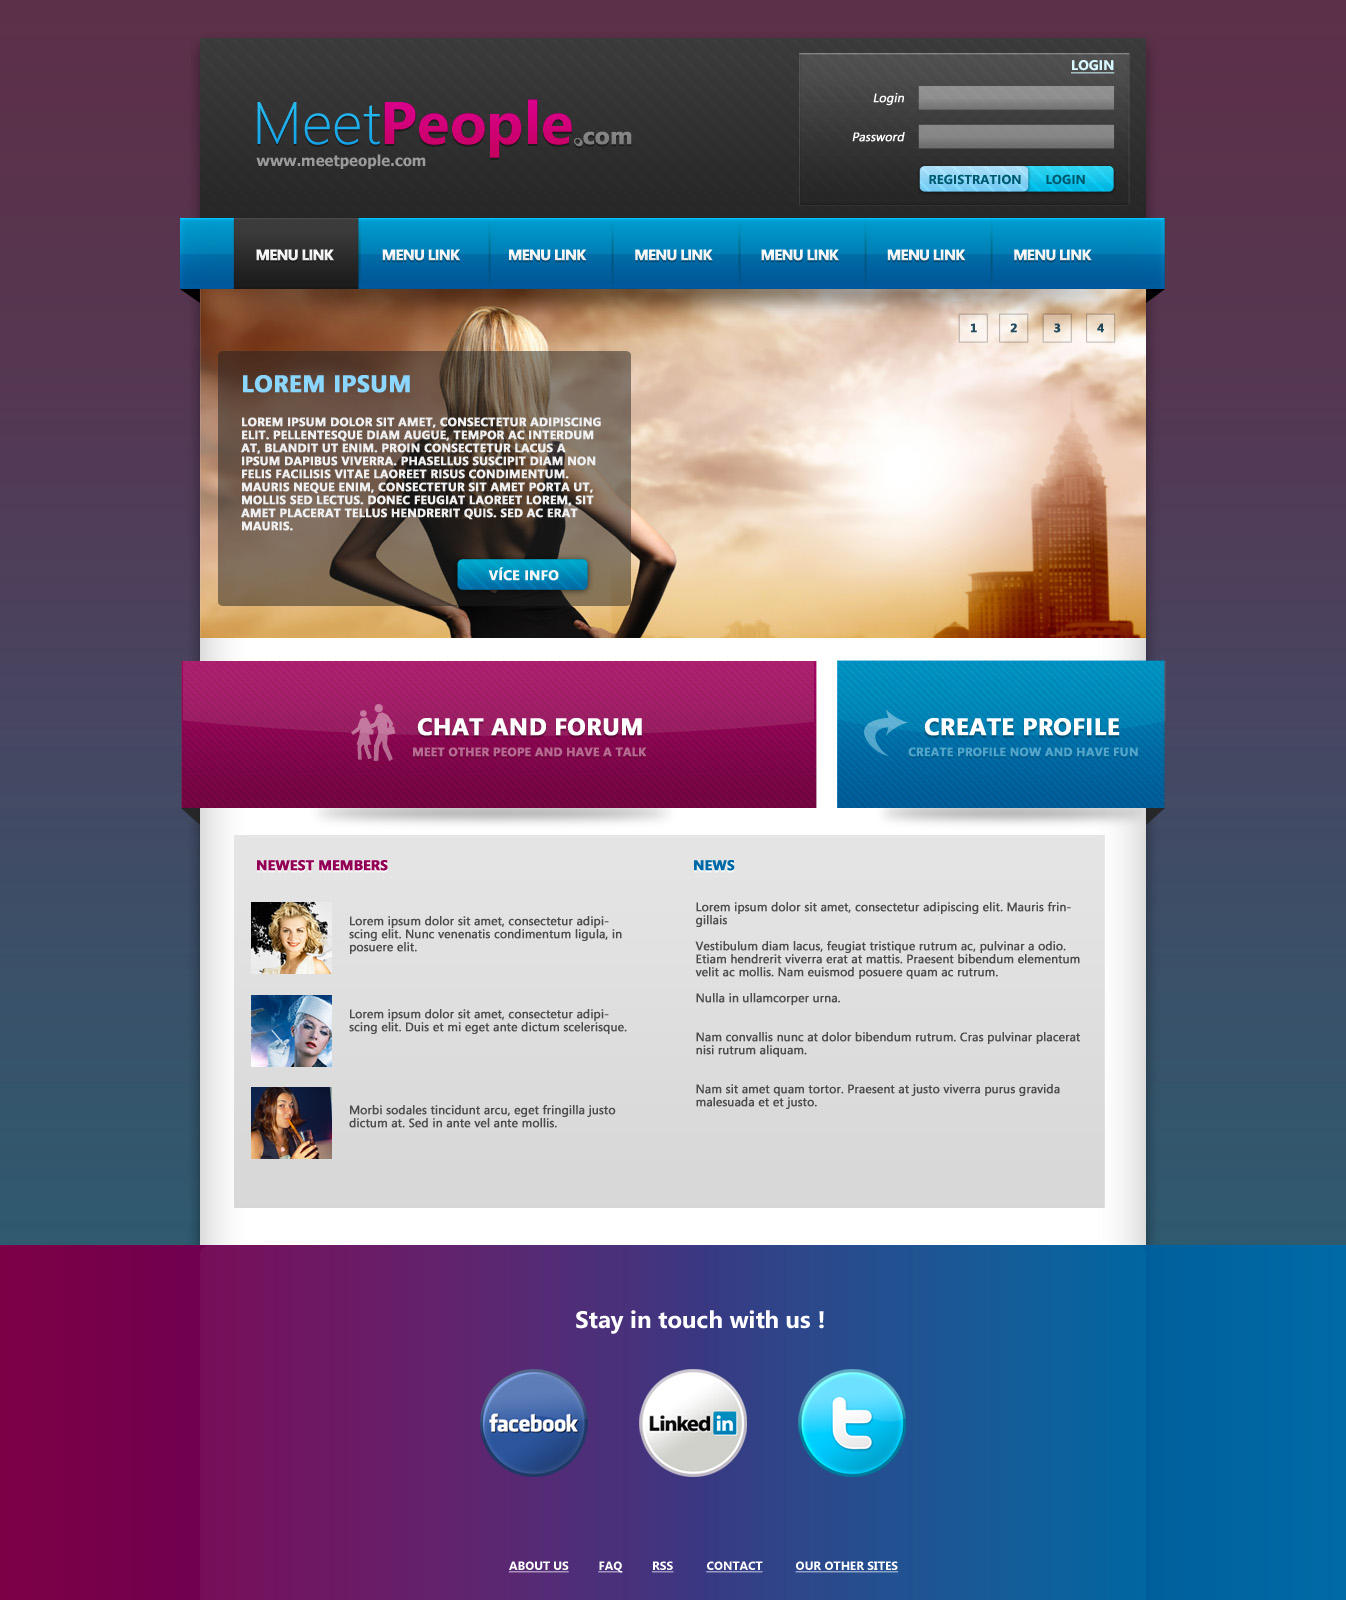 Website Psd Template In 3 Colors: MeetPeople Web Template PSD By Martz90 On DeviantArt